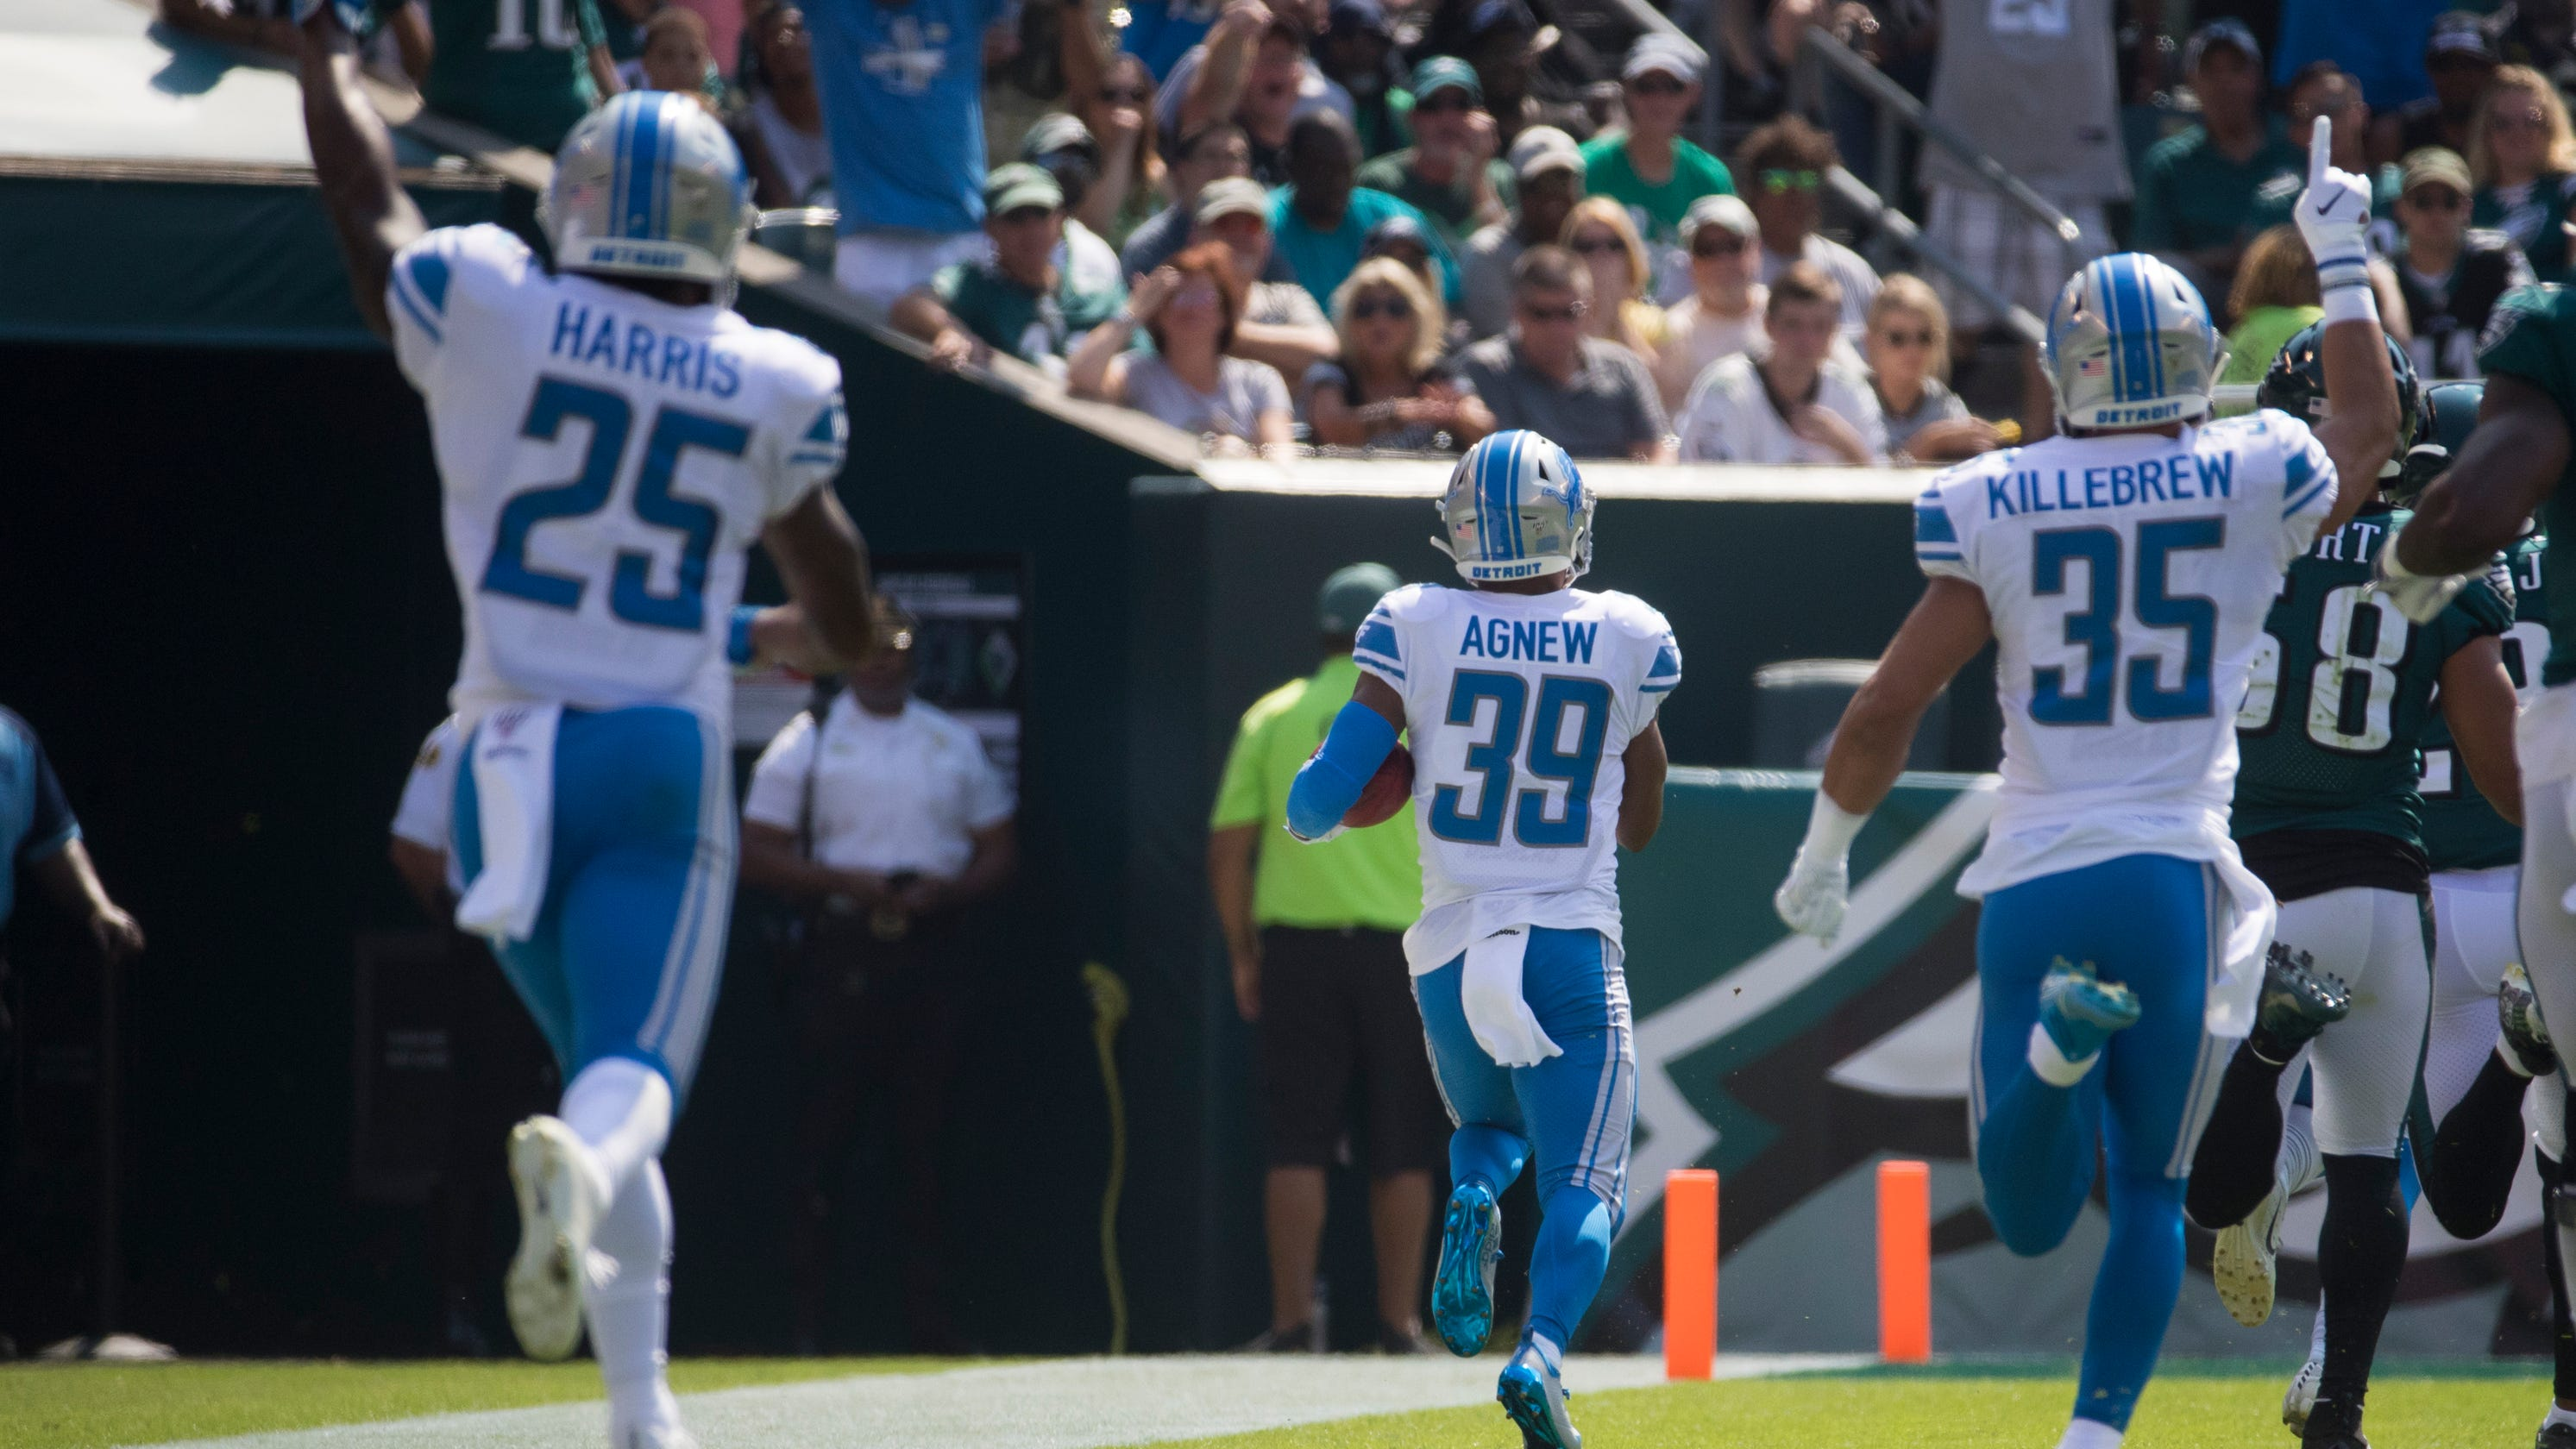 Lions and Packers remain unbeaten going in to week 4